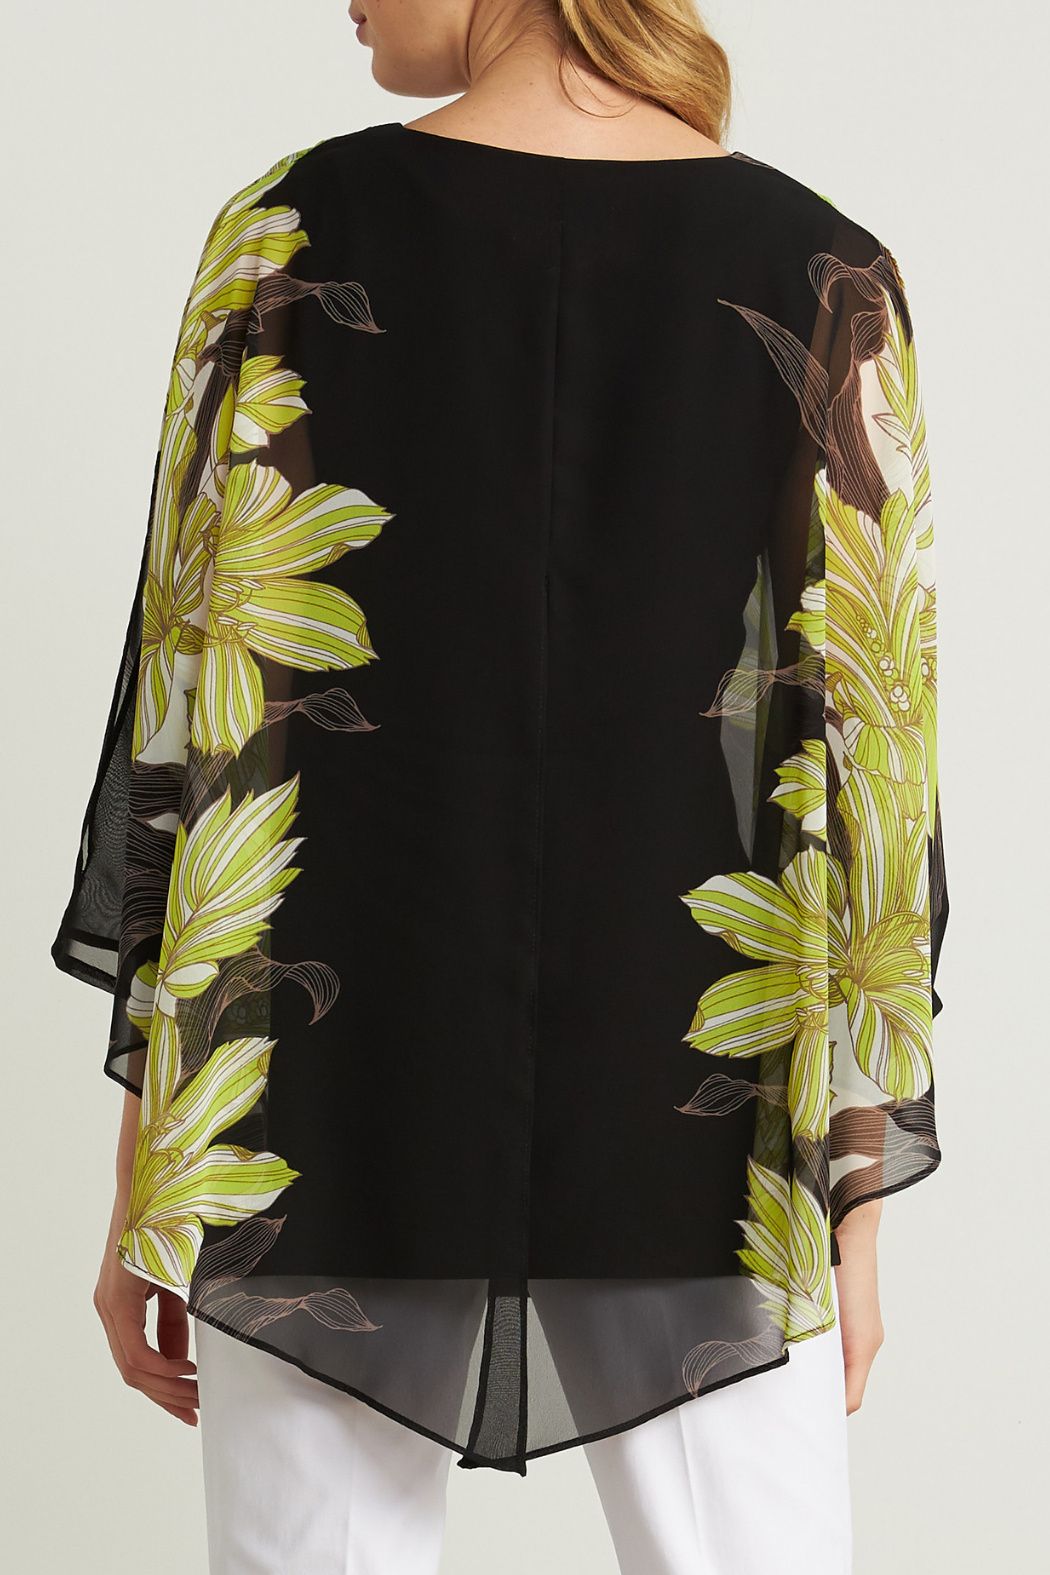 Joseph Ribkoff  Floral Cut-out Sleeve Blouse - Side Cropped Image